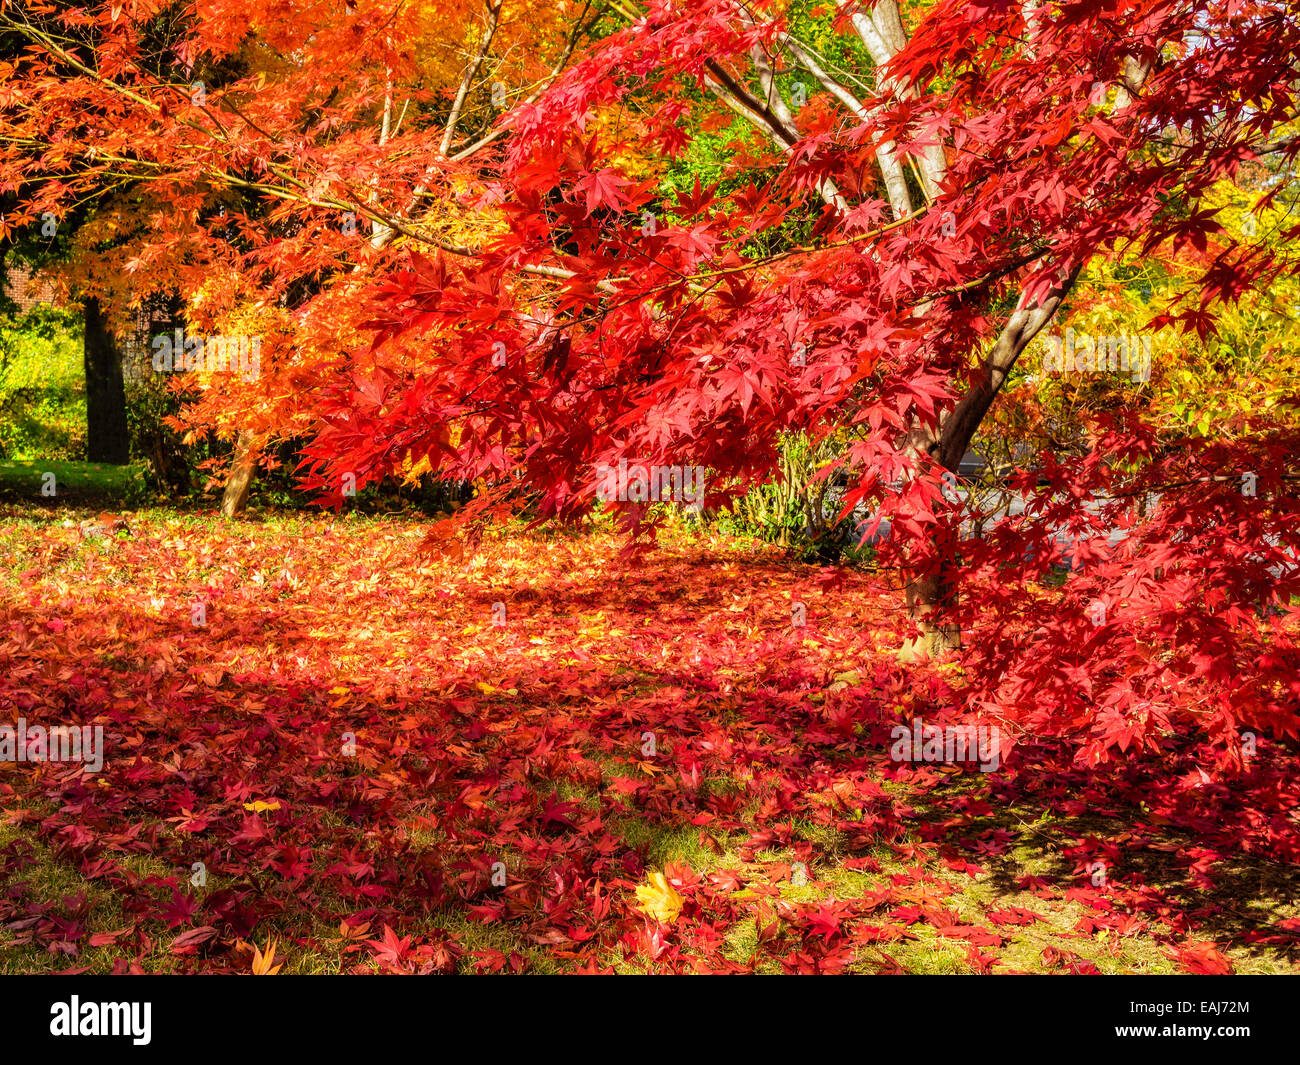 colorful-gold-yellow-orange-and-red-japanese-maple-trees-with-fall-EAJ72M.jpg